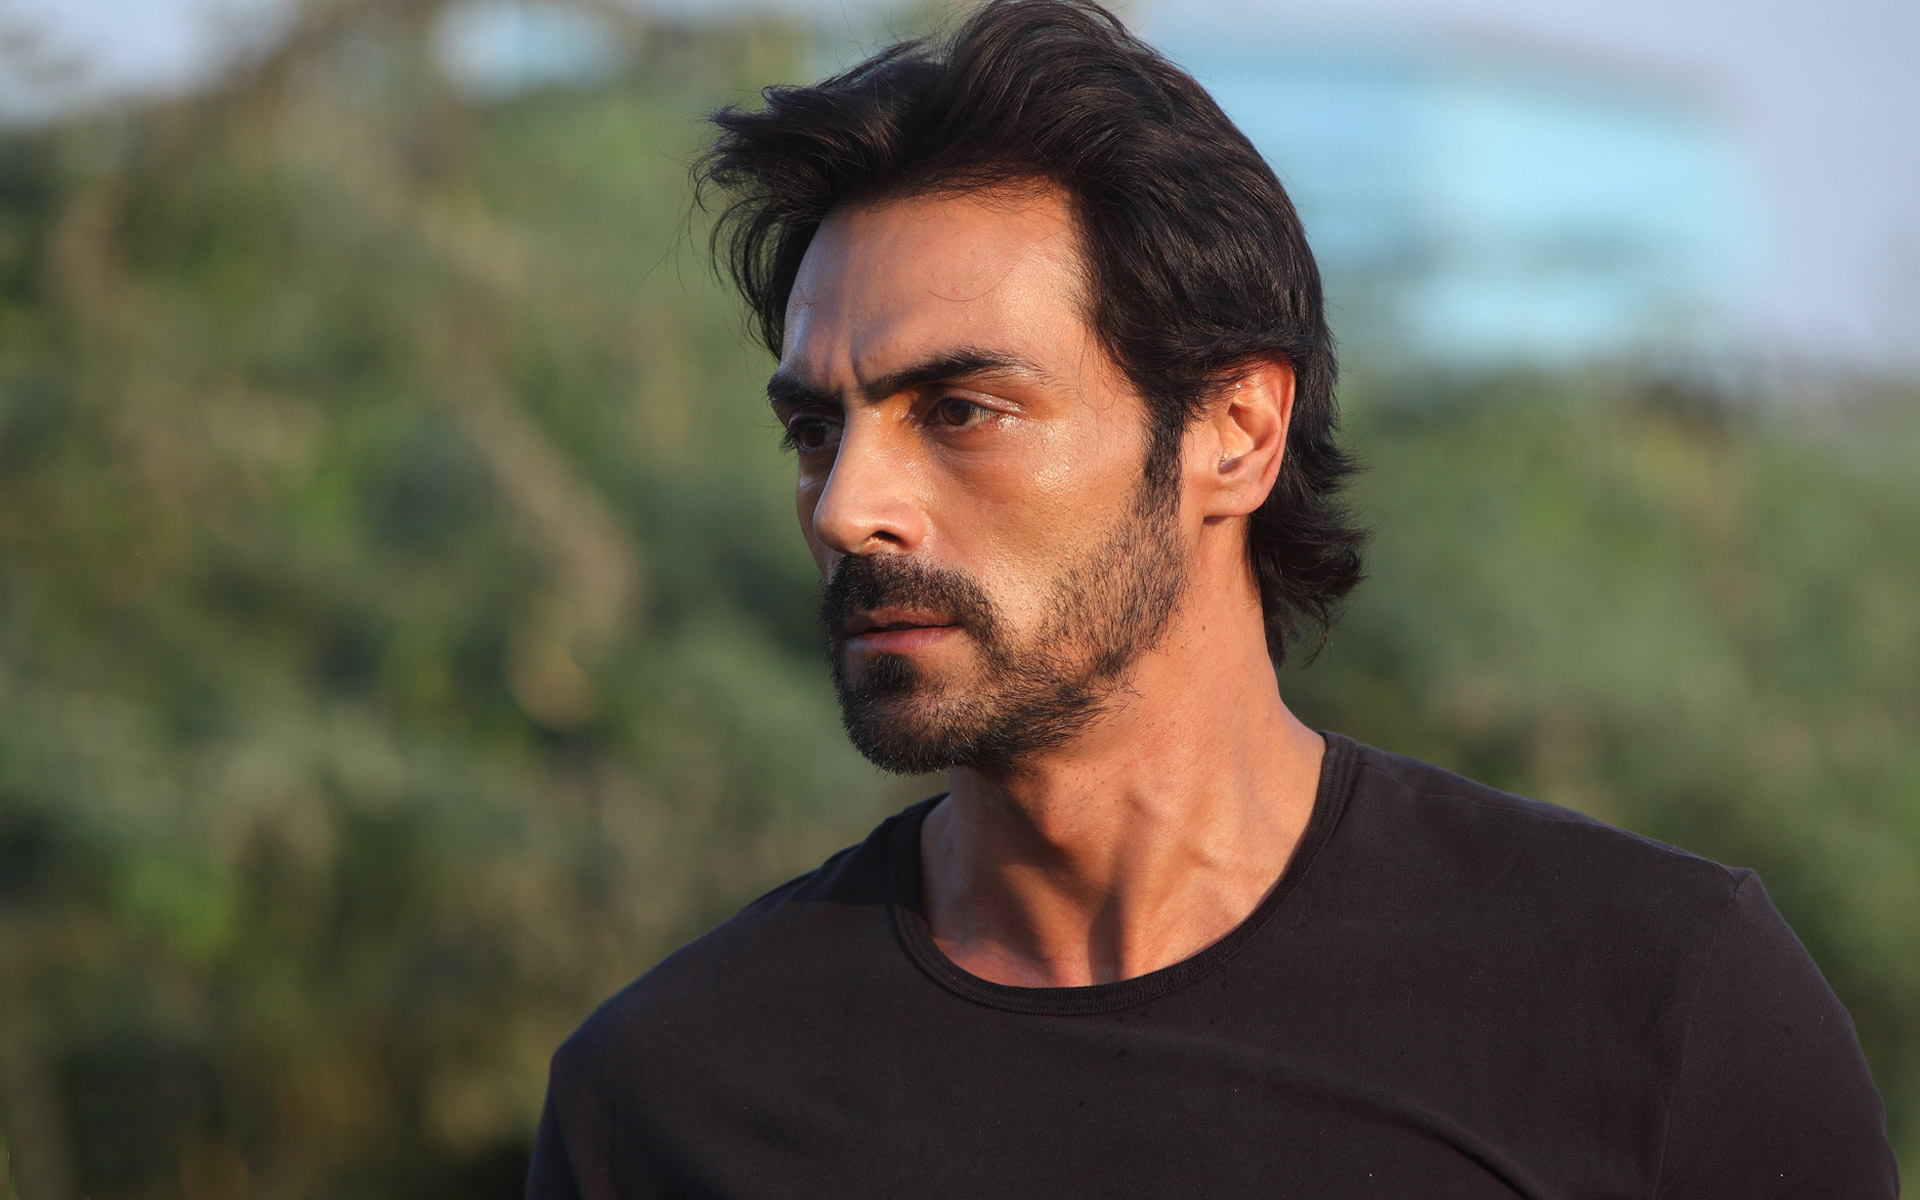 Arjun-Rampal-Sexy-New-Look-in-D-Day-Movie